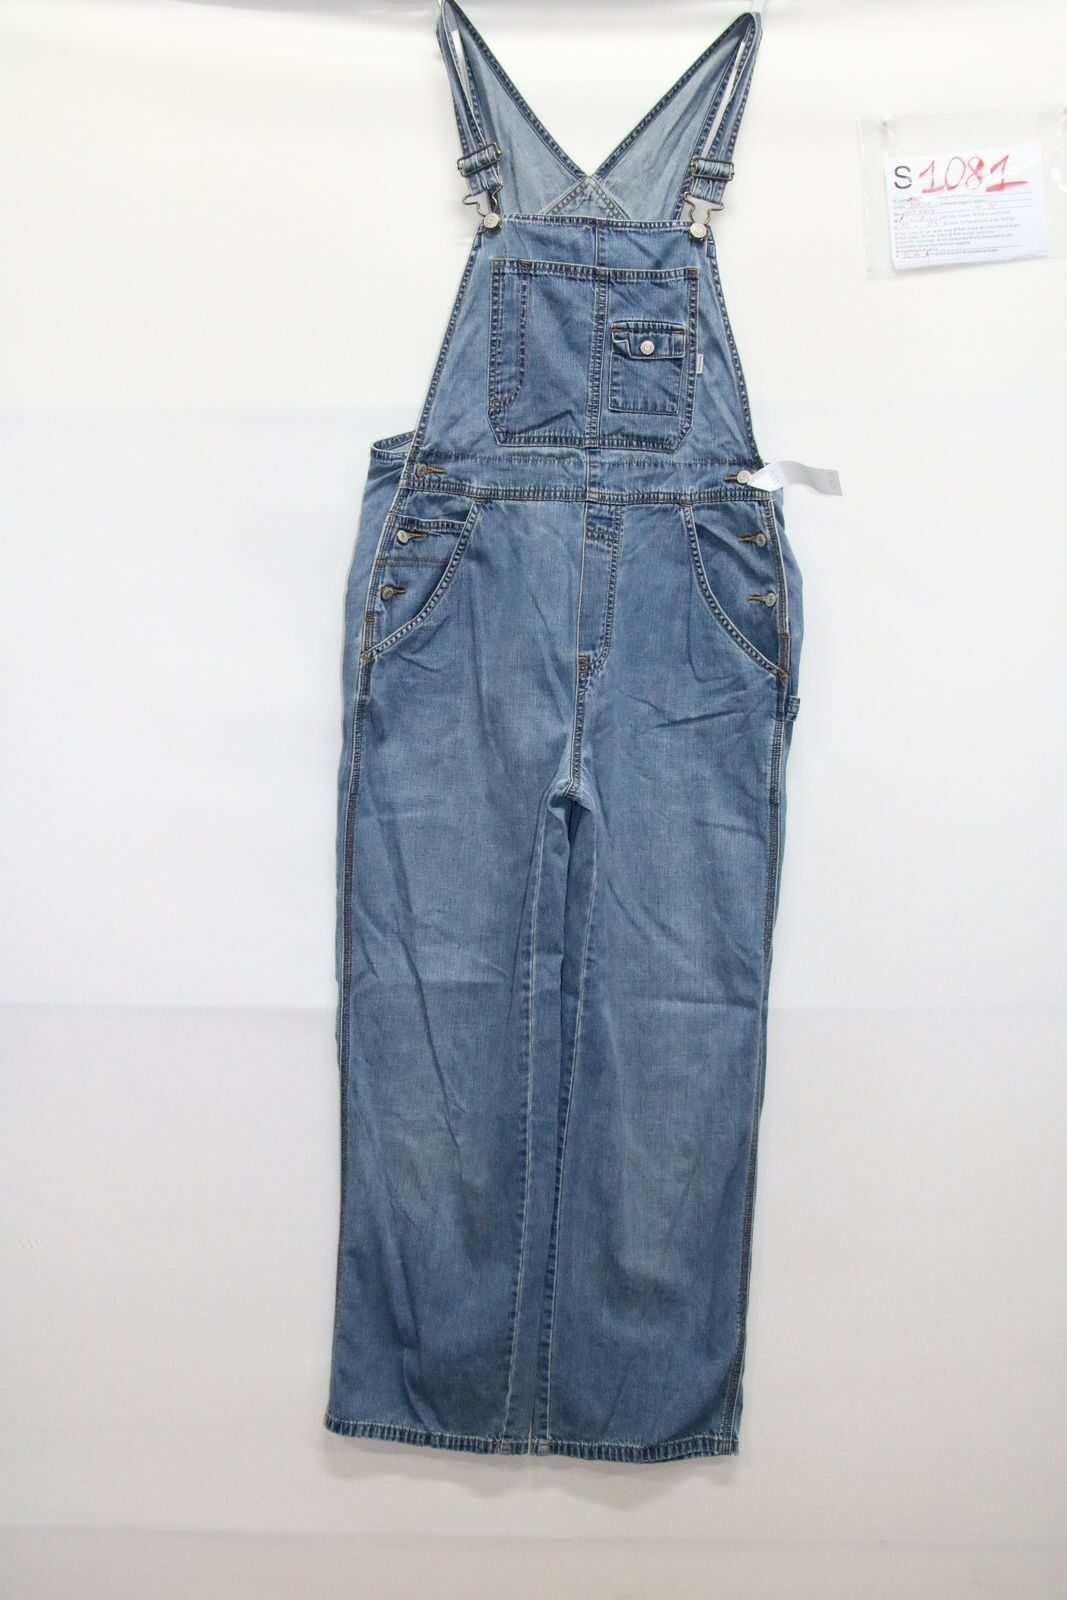 Dungarees OLD NAVY (Cod. S1081) Size M jeans used vintage STREETWEAR woman